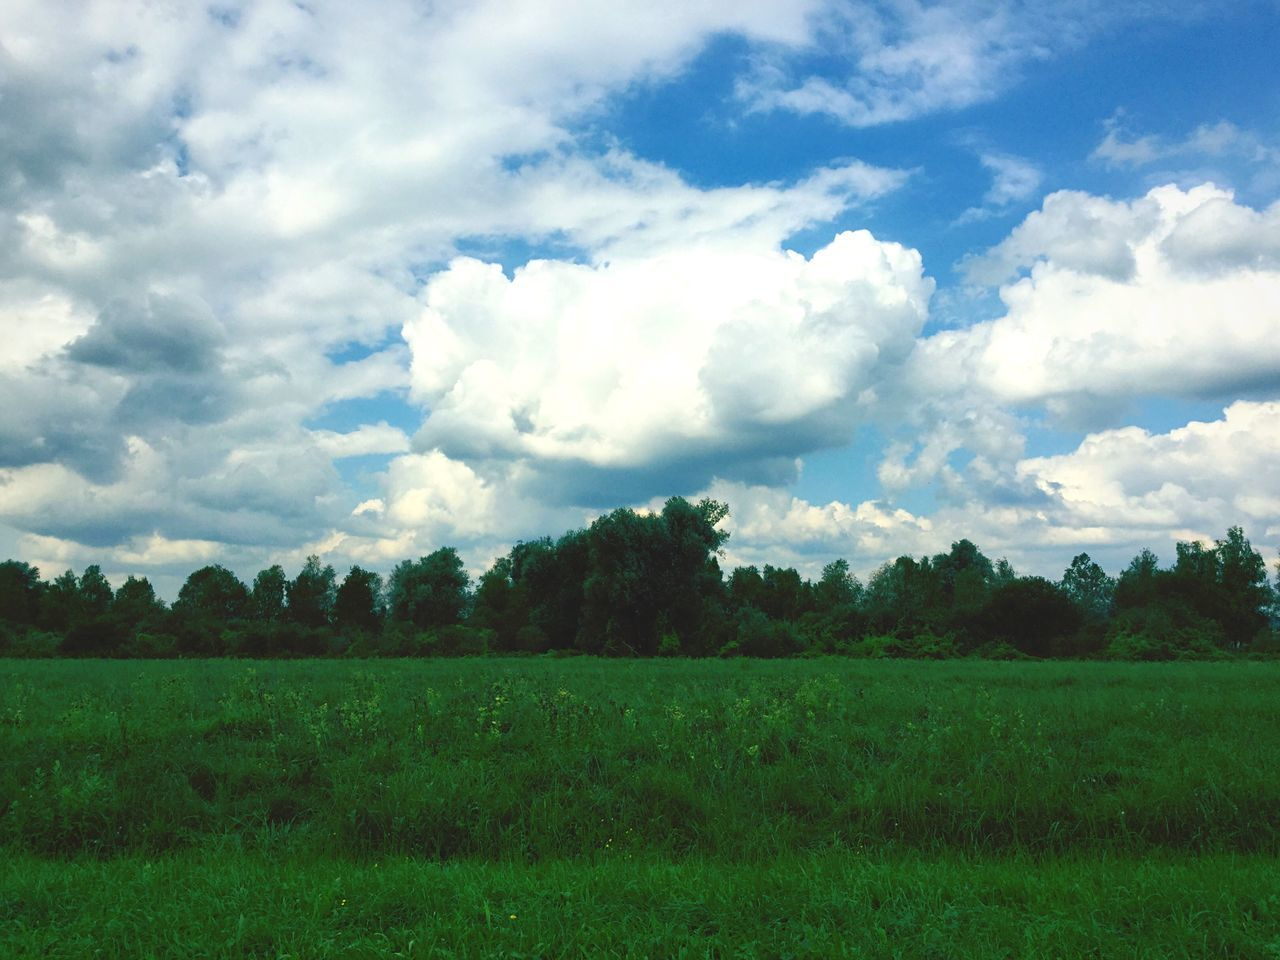 field, landscape, sky, nature, tree, beauty in nature, grass, tranquility, agriculture, no people, cloud - sky, scenics, tranquil scene, growth, outdoors, day